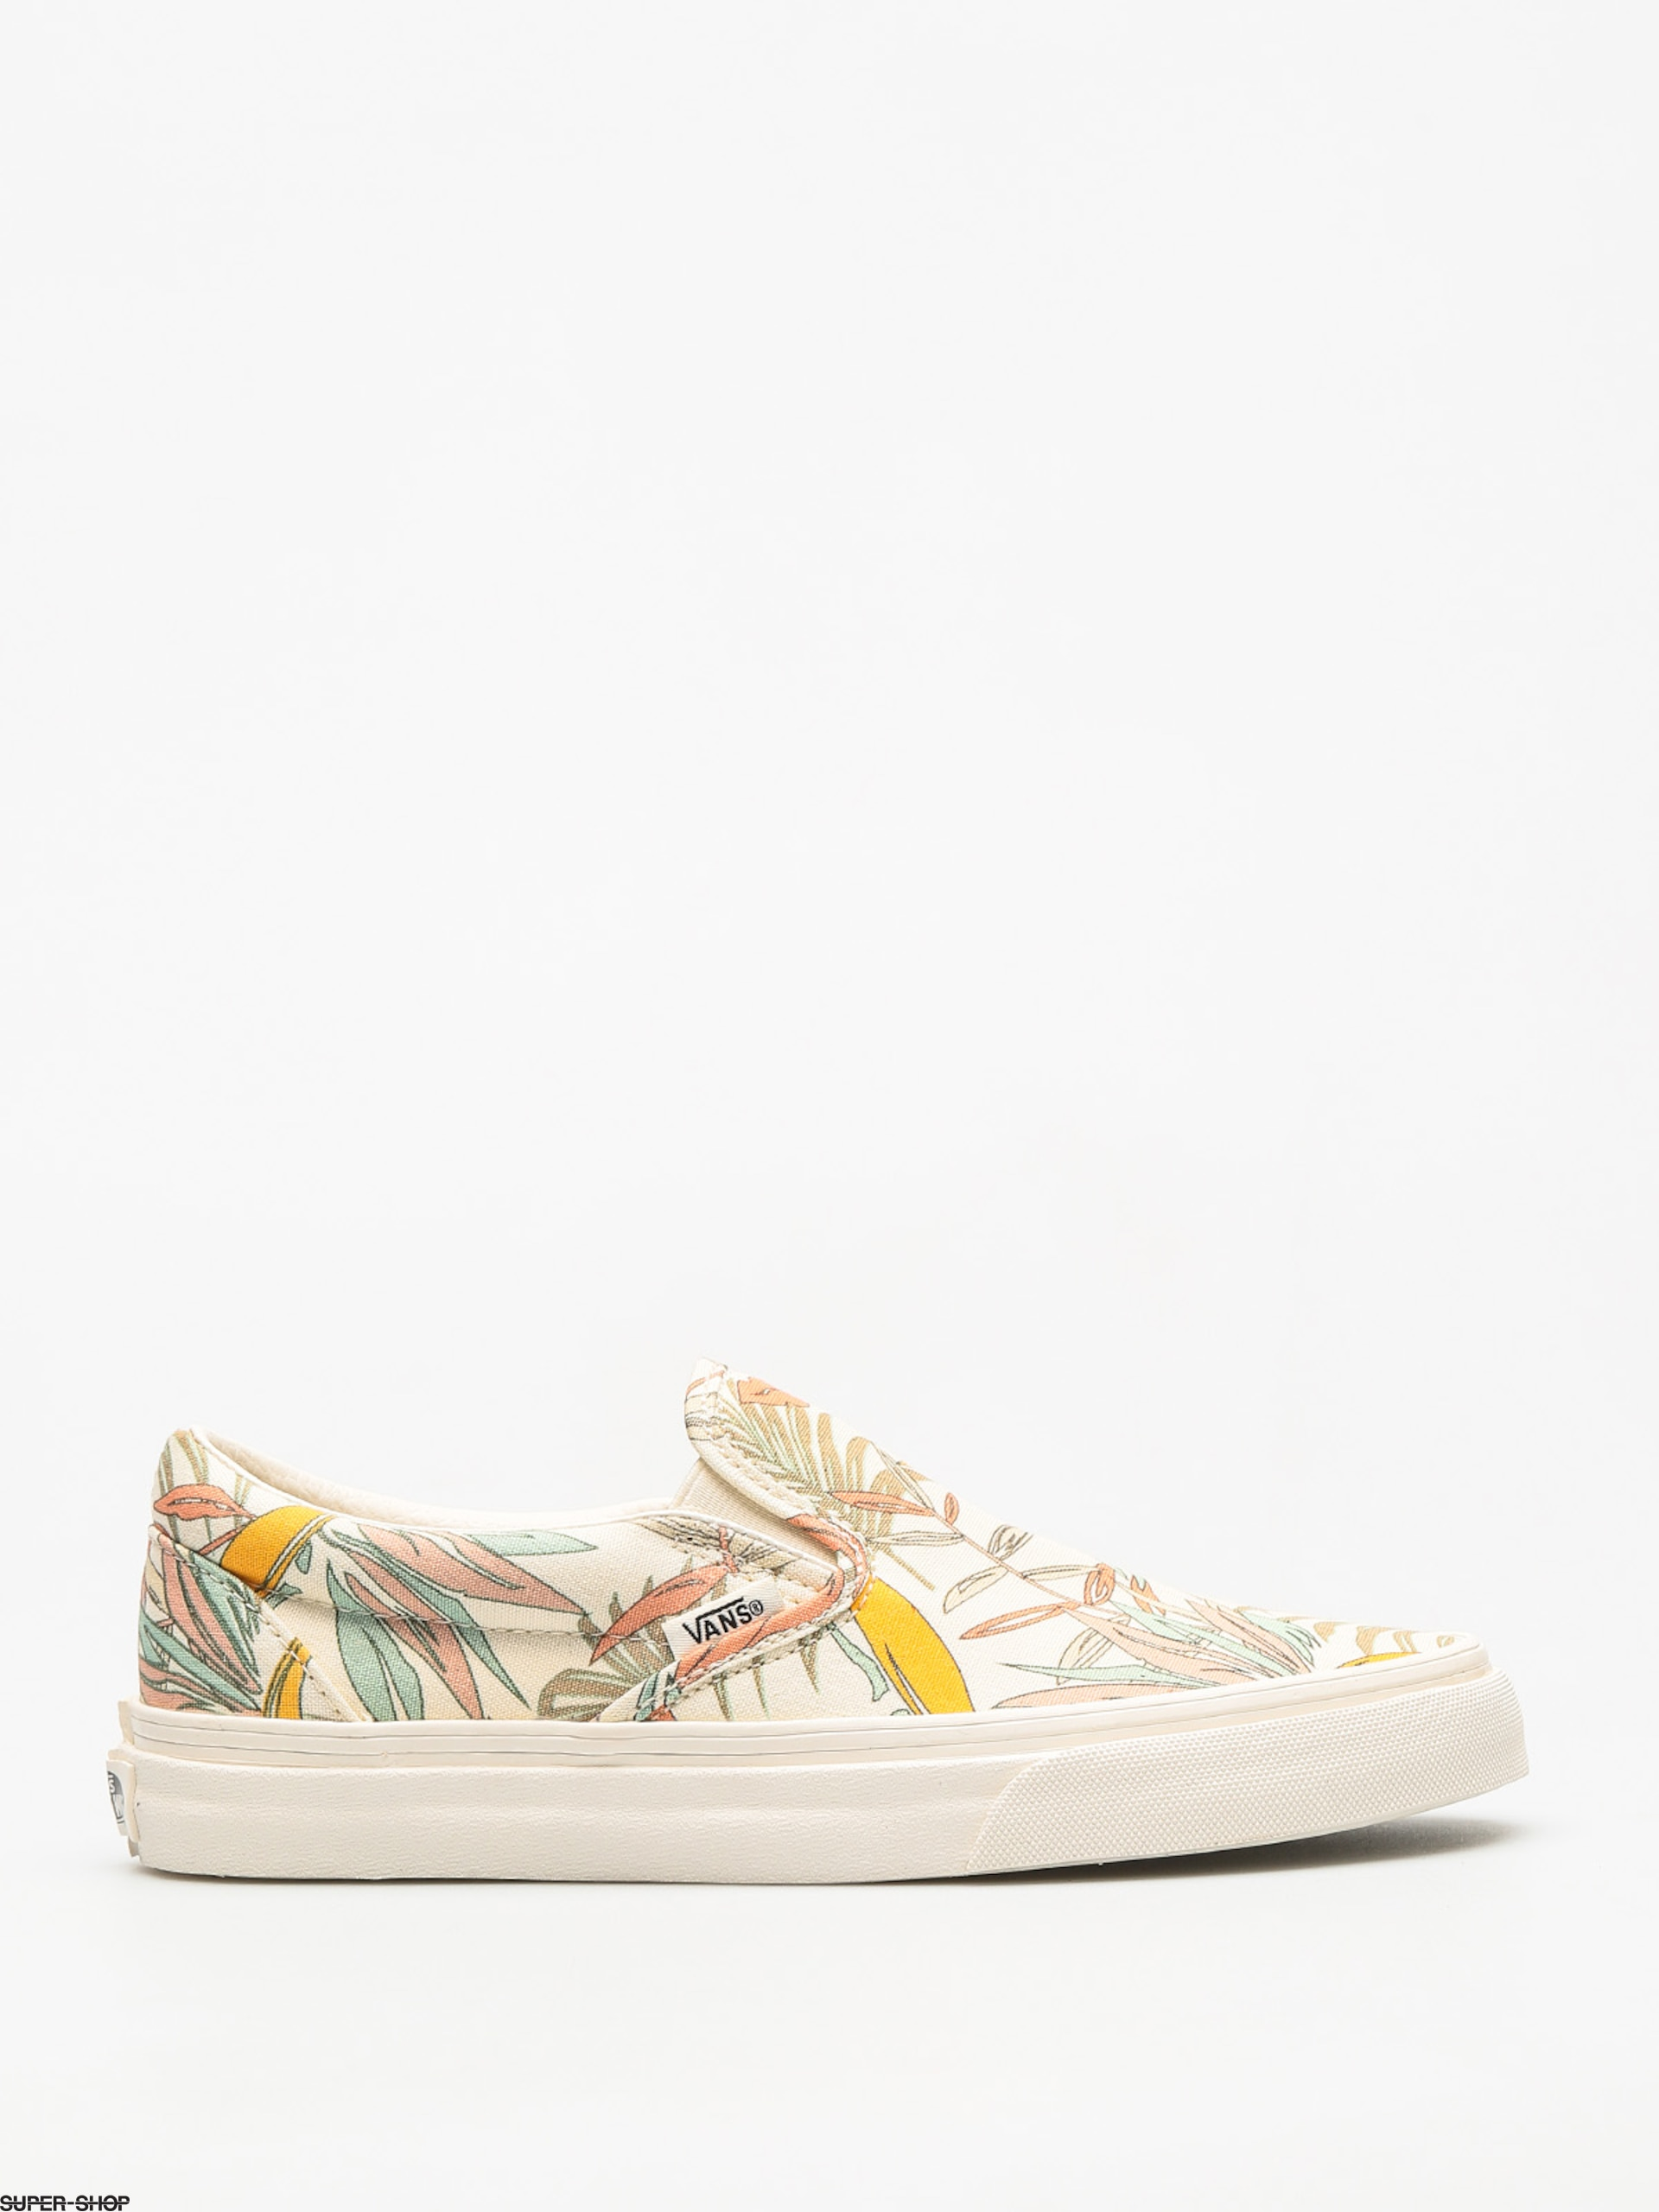 7924bbb497 Vans Shoes Classic Slip On (california floral marshmallow marshmallow)